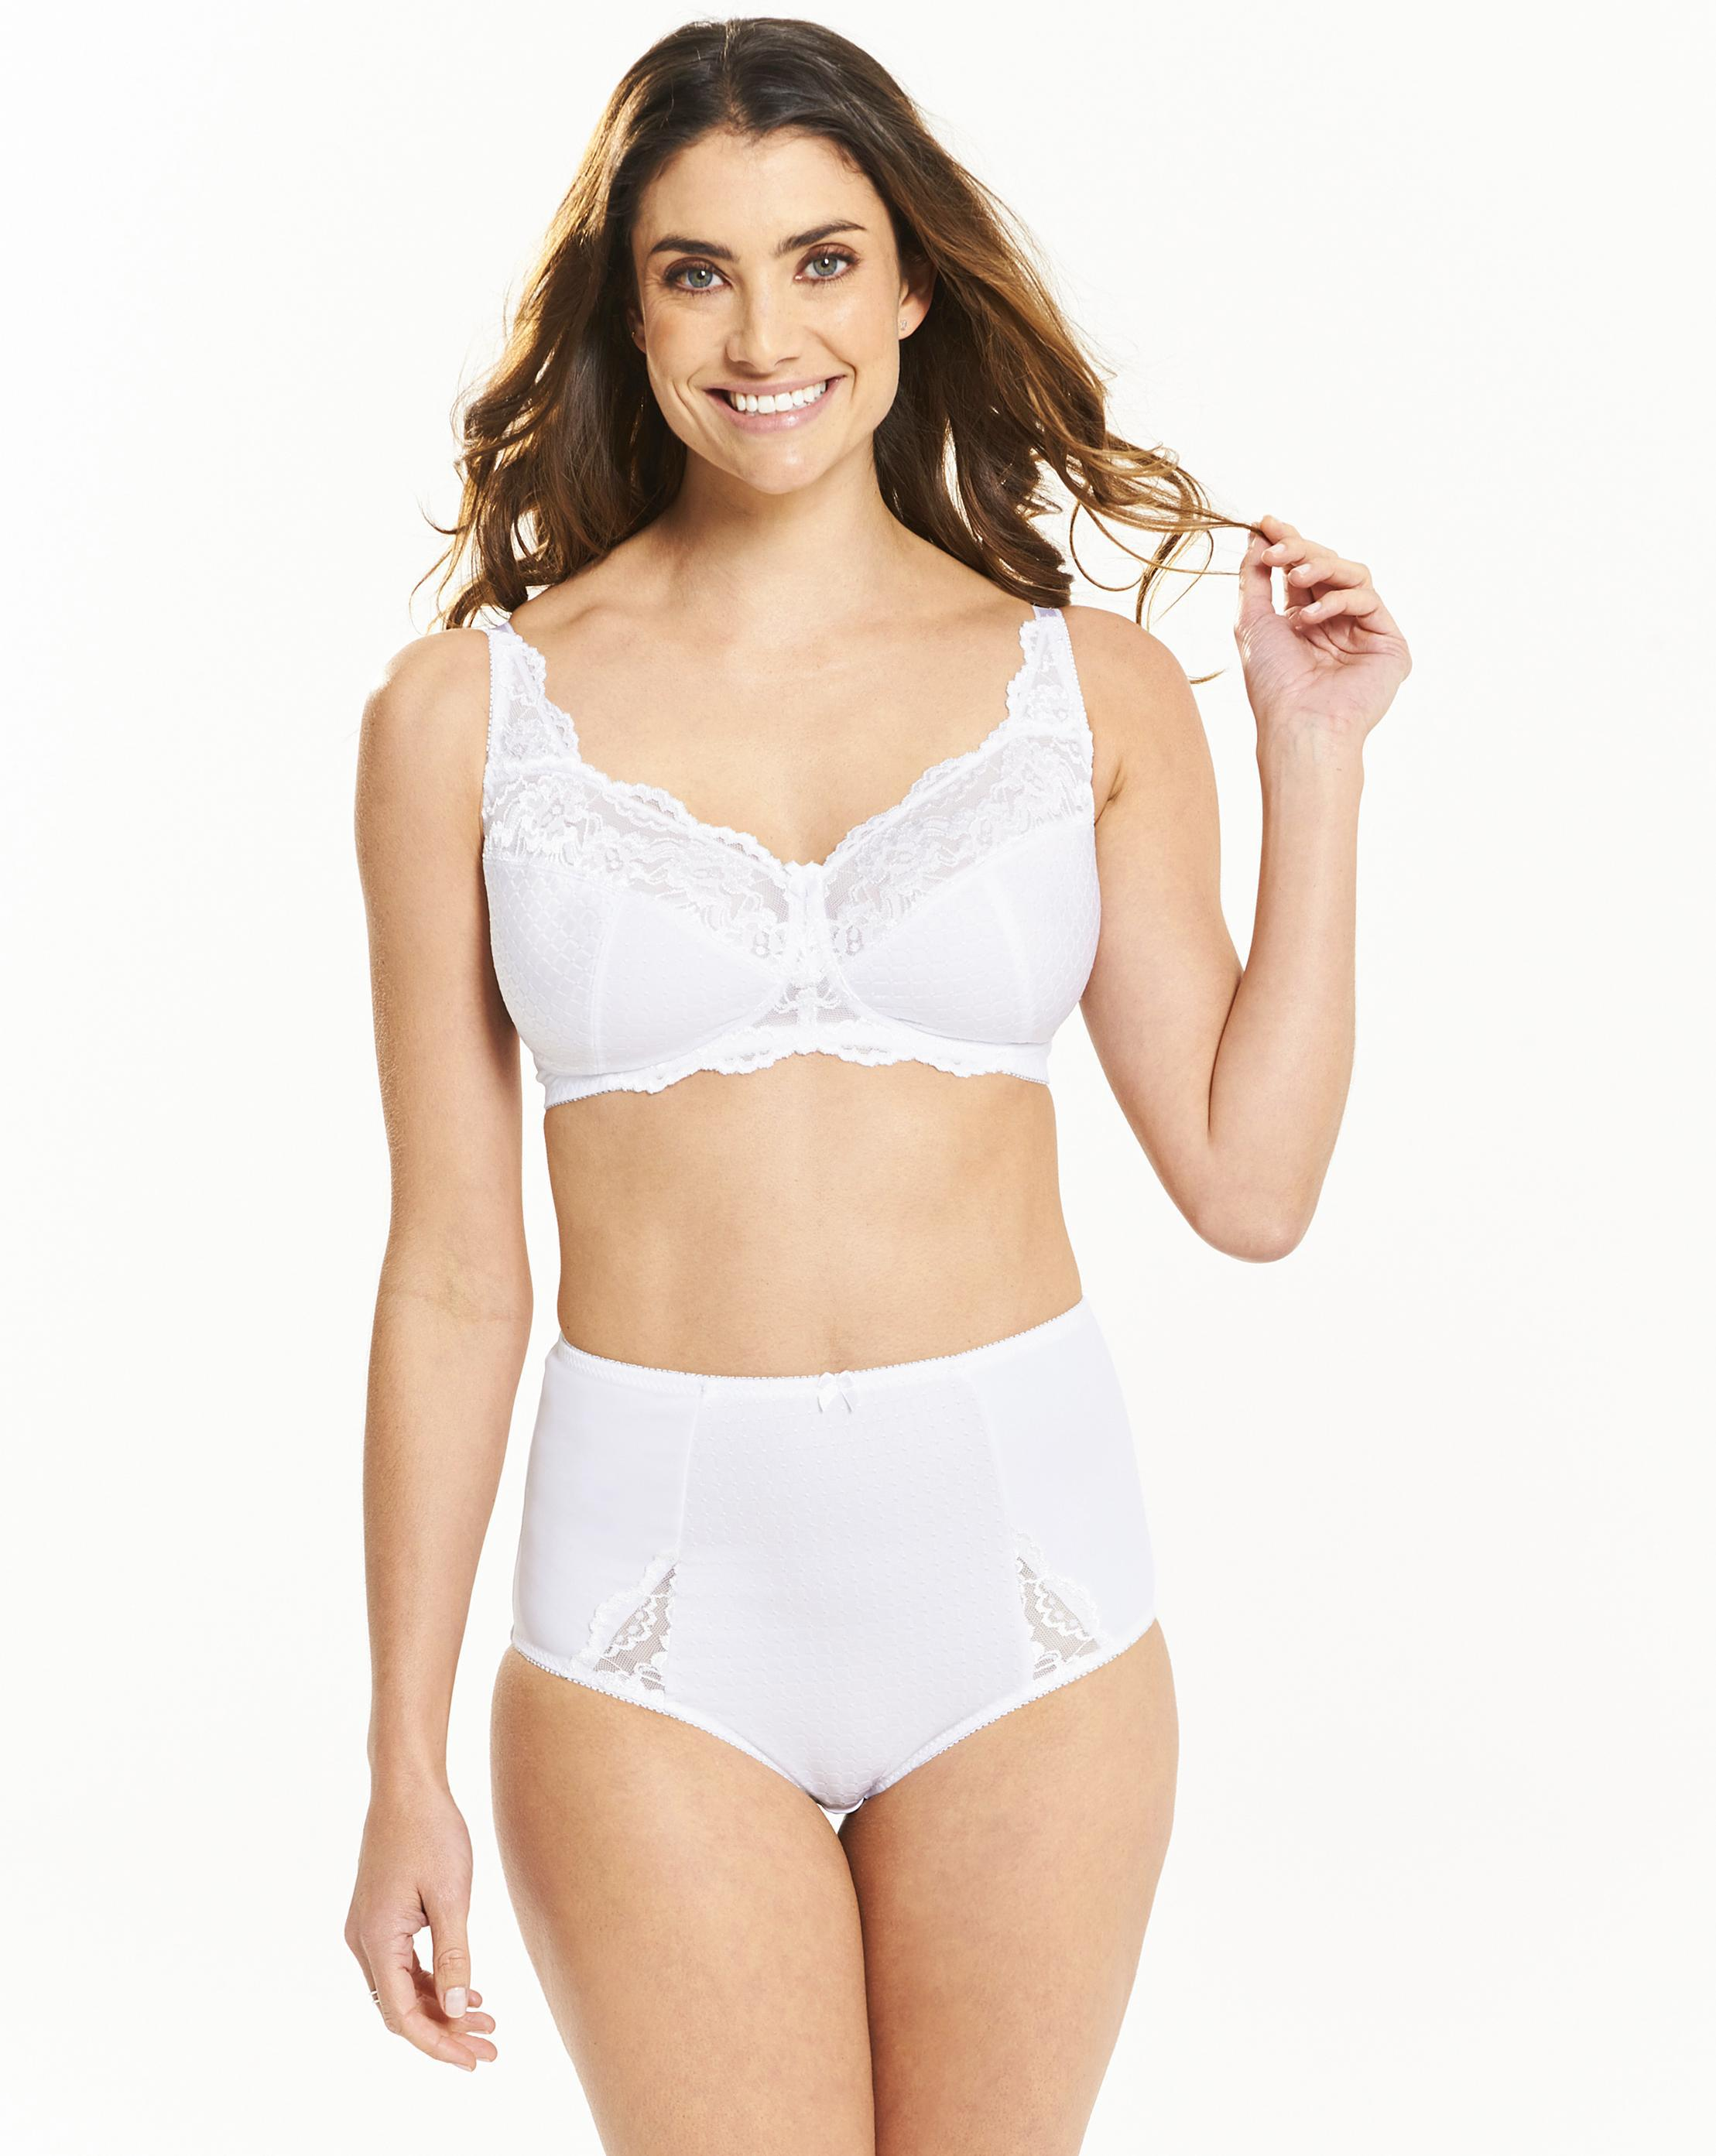 c8cac8ec0d2e8 Lyst - Simply Be Pretty Secrets White Ruby Non Wired Bra in White